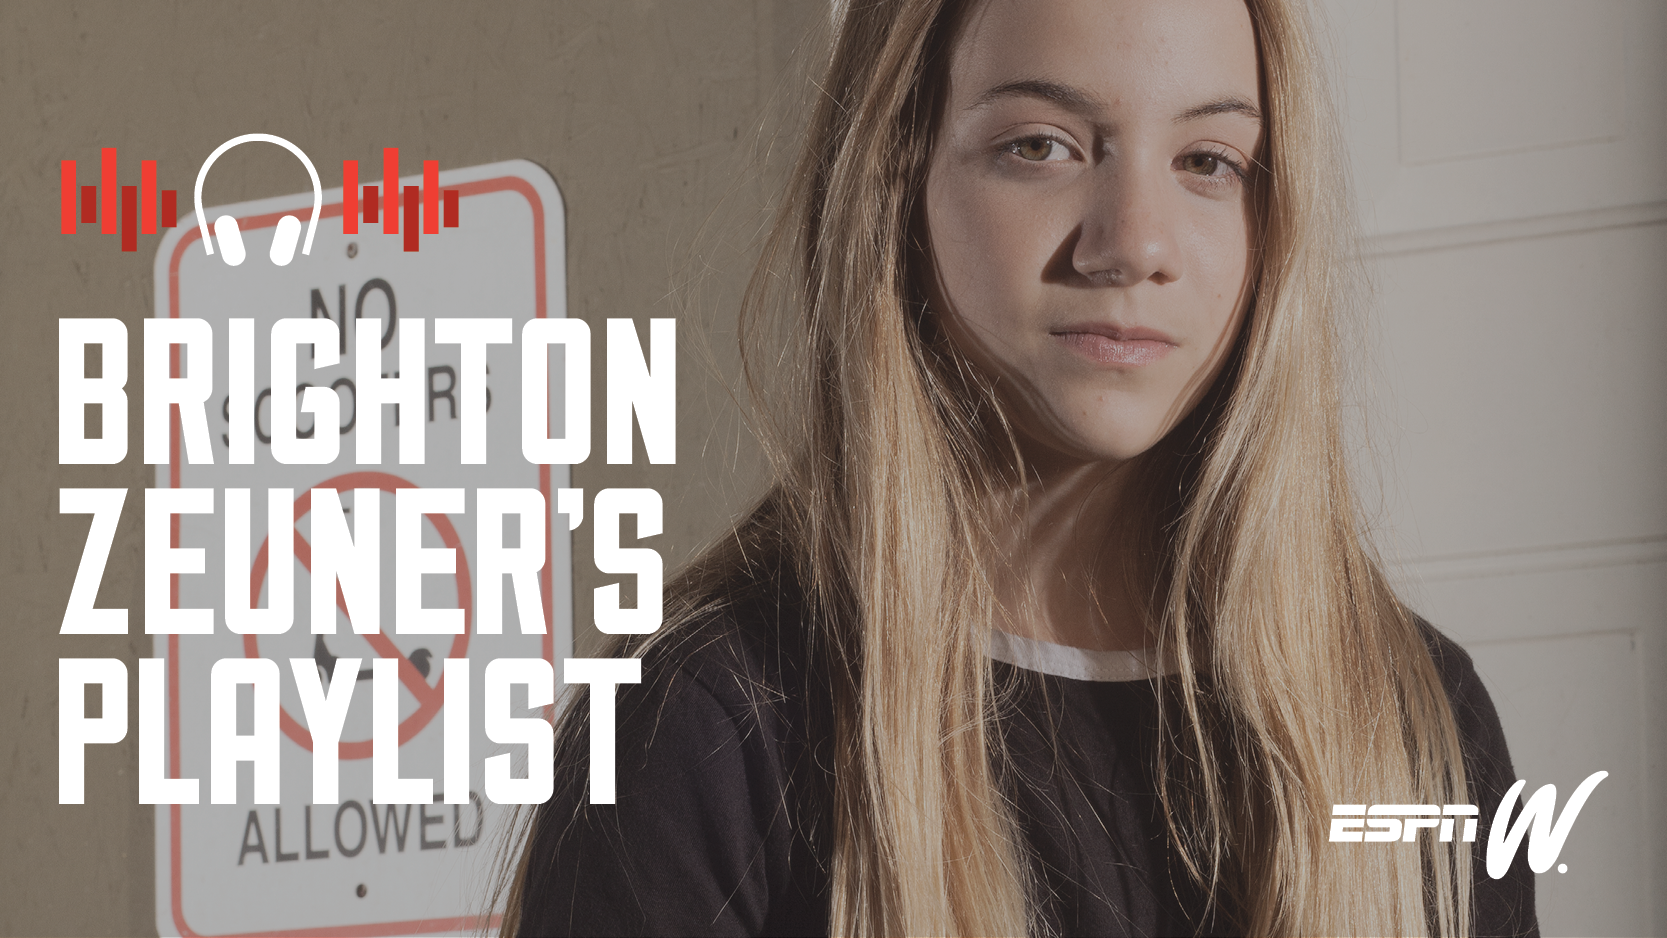 Spotify Athlete Playlist - Brighton Zeuner